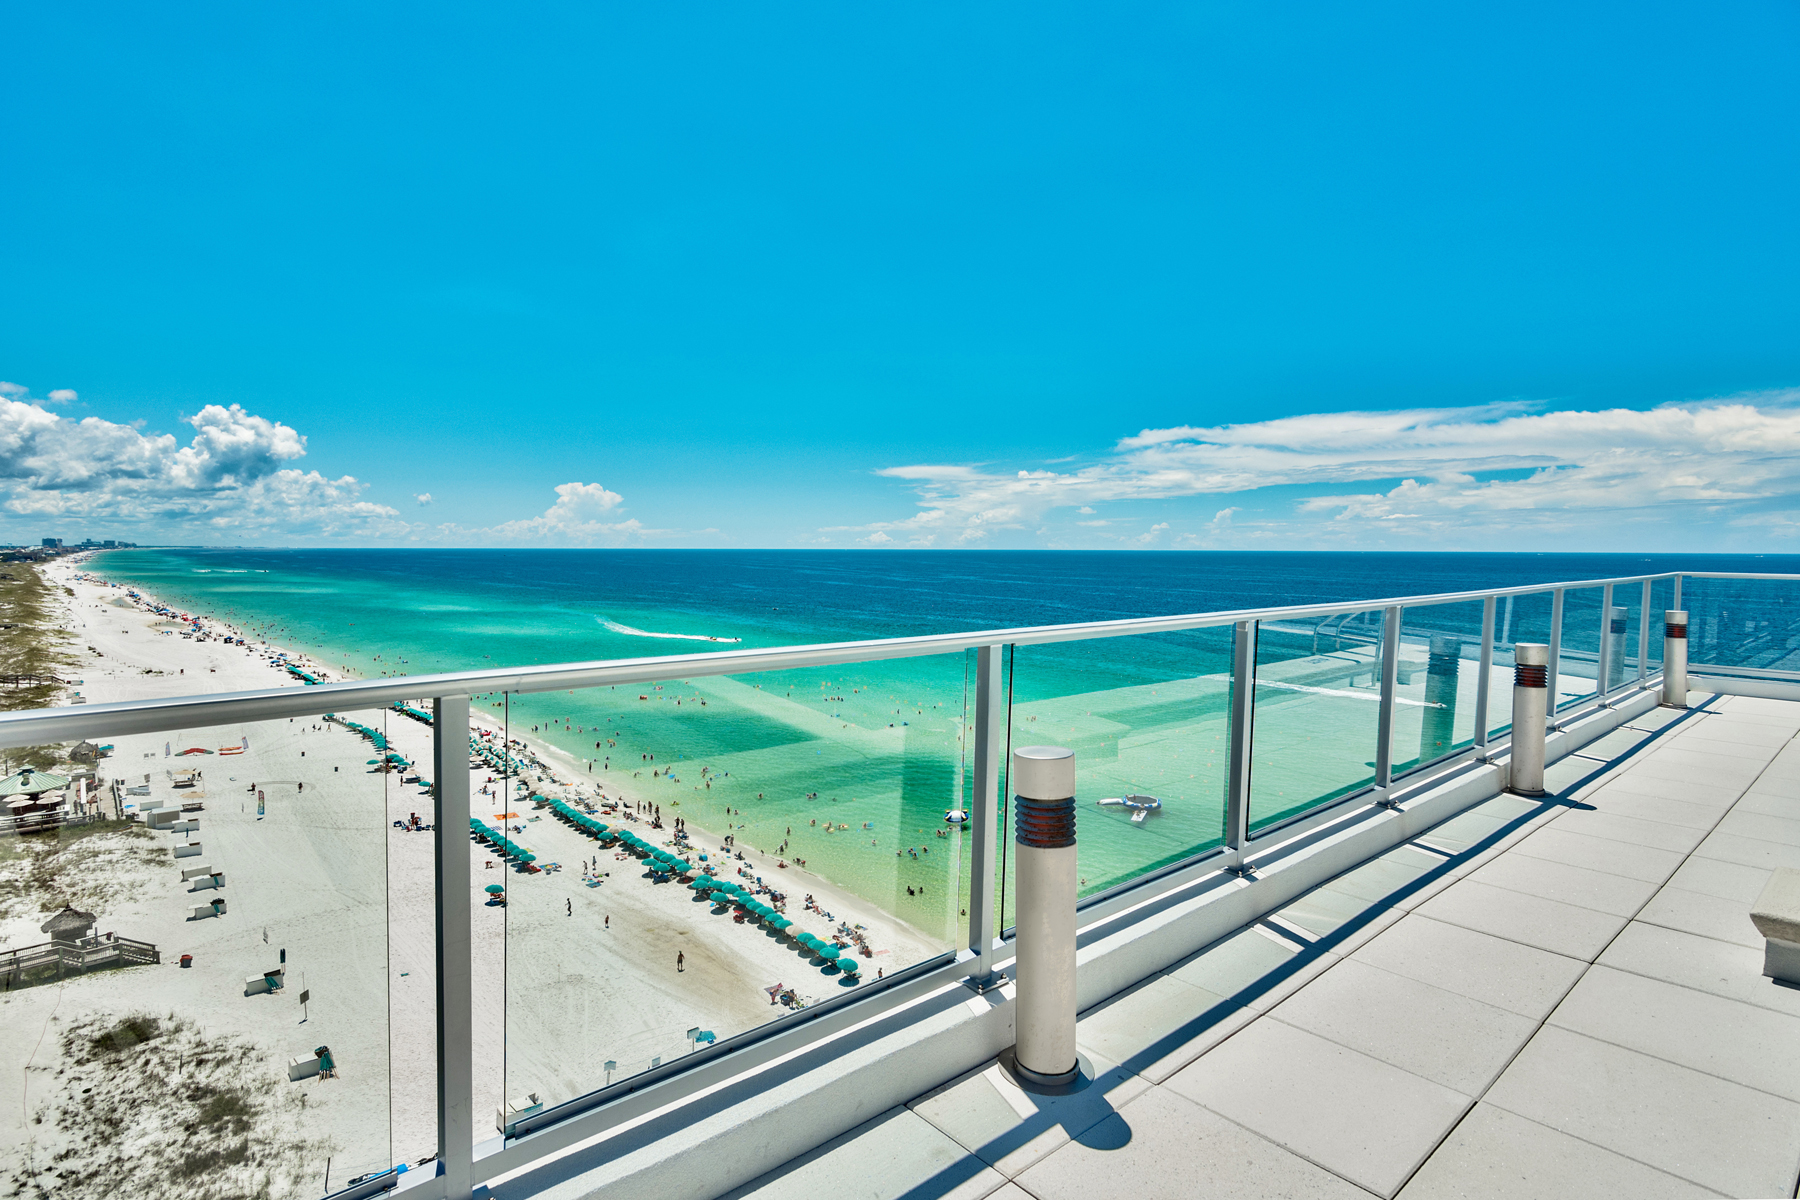 Condomínio para Venda às LUXURIOUS PRE-CONSTRUCTION OPPORTUNITY 1900 Scenic Hwy 98 902 Destin, Florida 32541 Estados Unidos